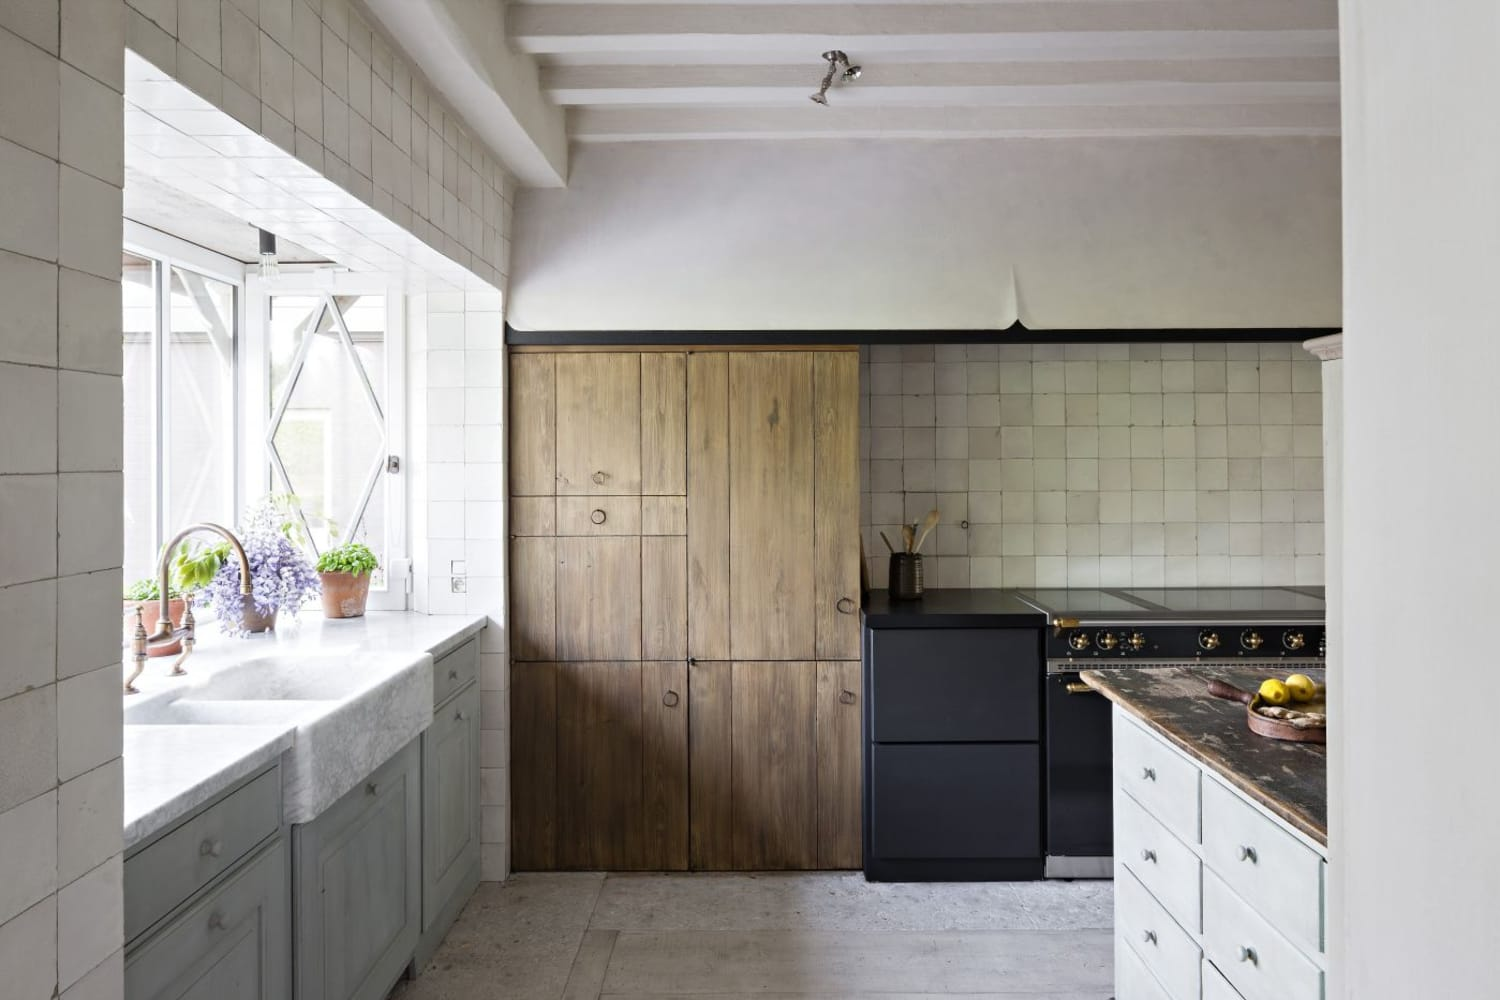 2017 Kitchen Trends That Aren't Going Away Anytime Soon